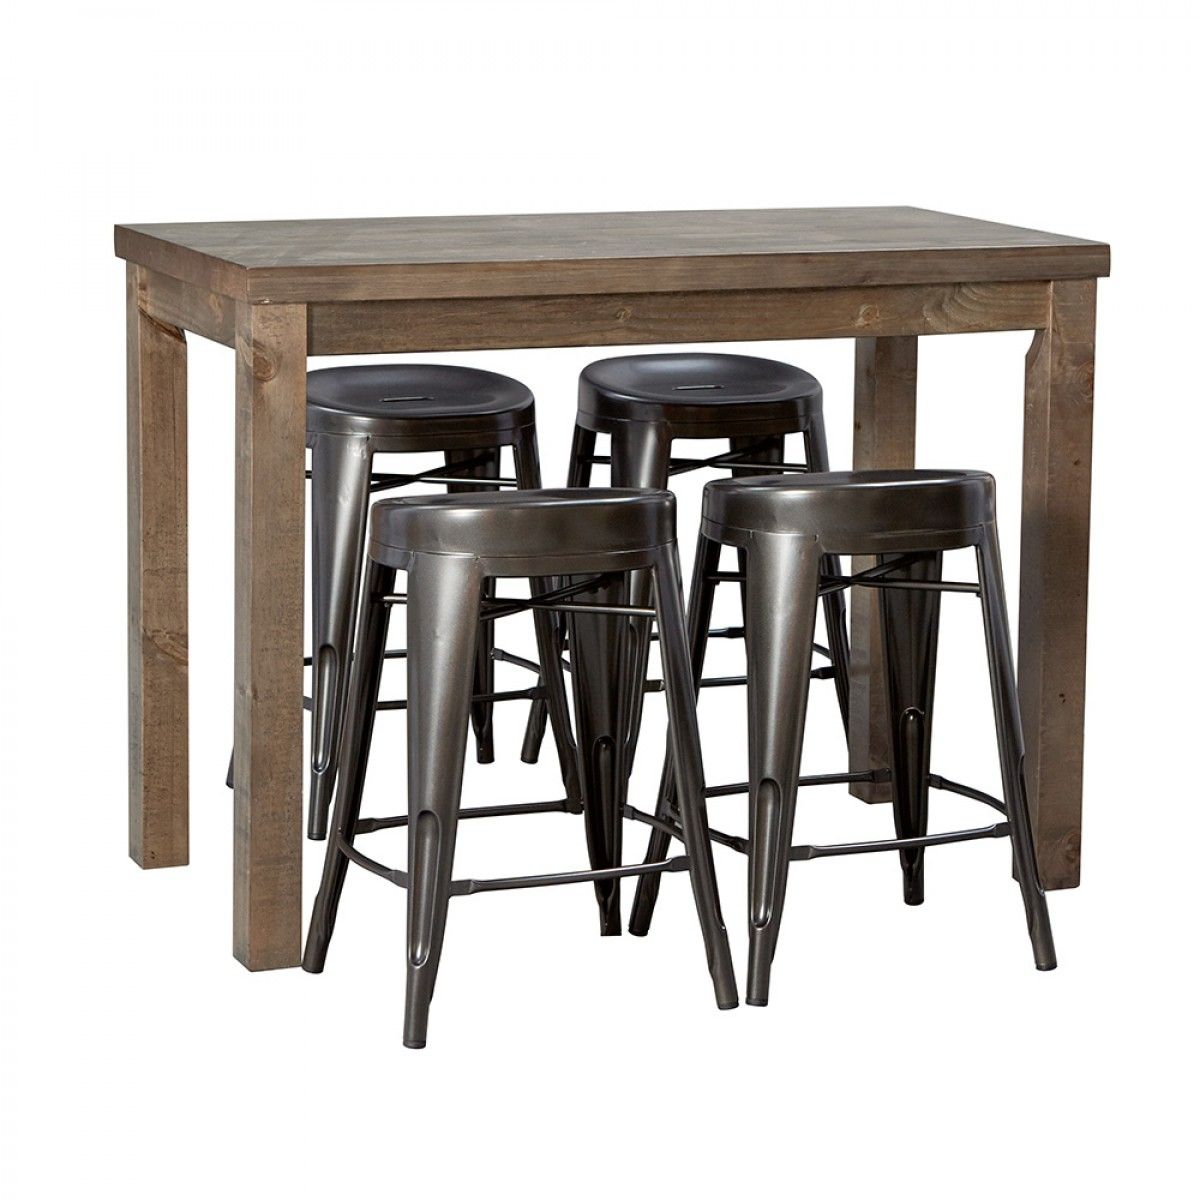 Magnificent Trentham 1200 Bar Table And 4 Fenton Charcoal Bar Stools Gamerscity Chair Design For Home Gamerscityorg